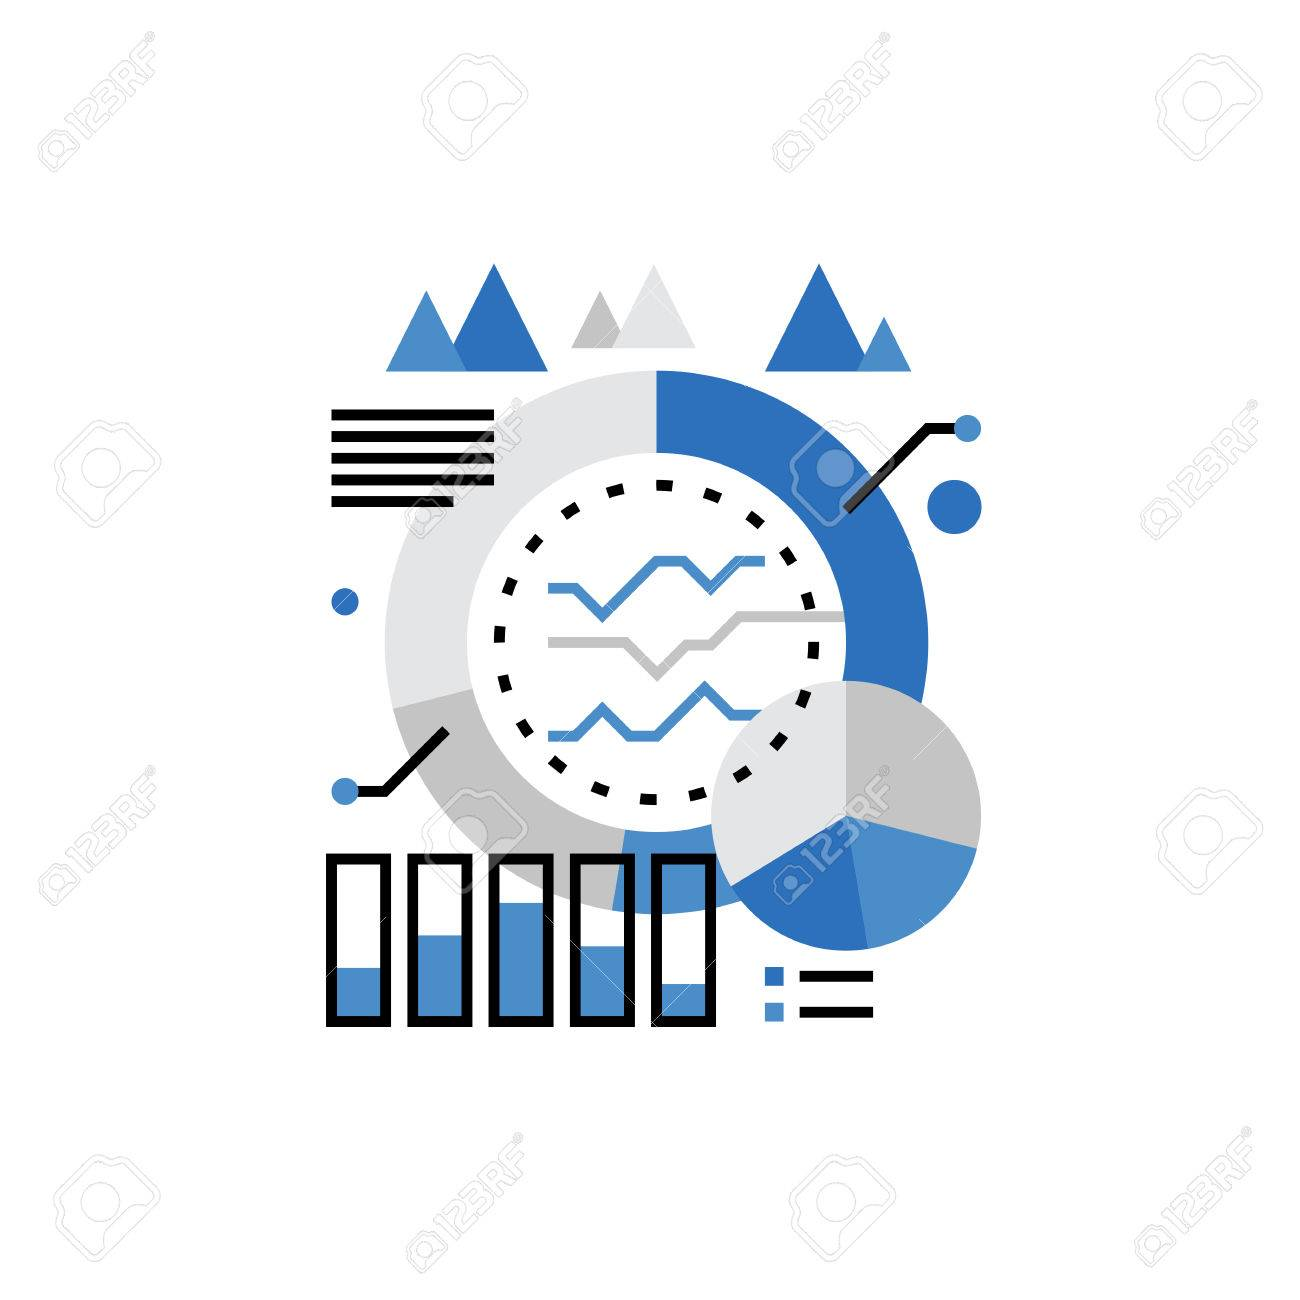 Modern vector icon of marketing campaign statistics showed as graphs and charts. Premium quality vector illustration concept. Flat line icon symbol. Flat design image isolated on white background. - 66079250